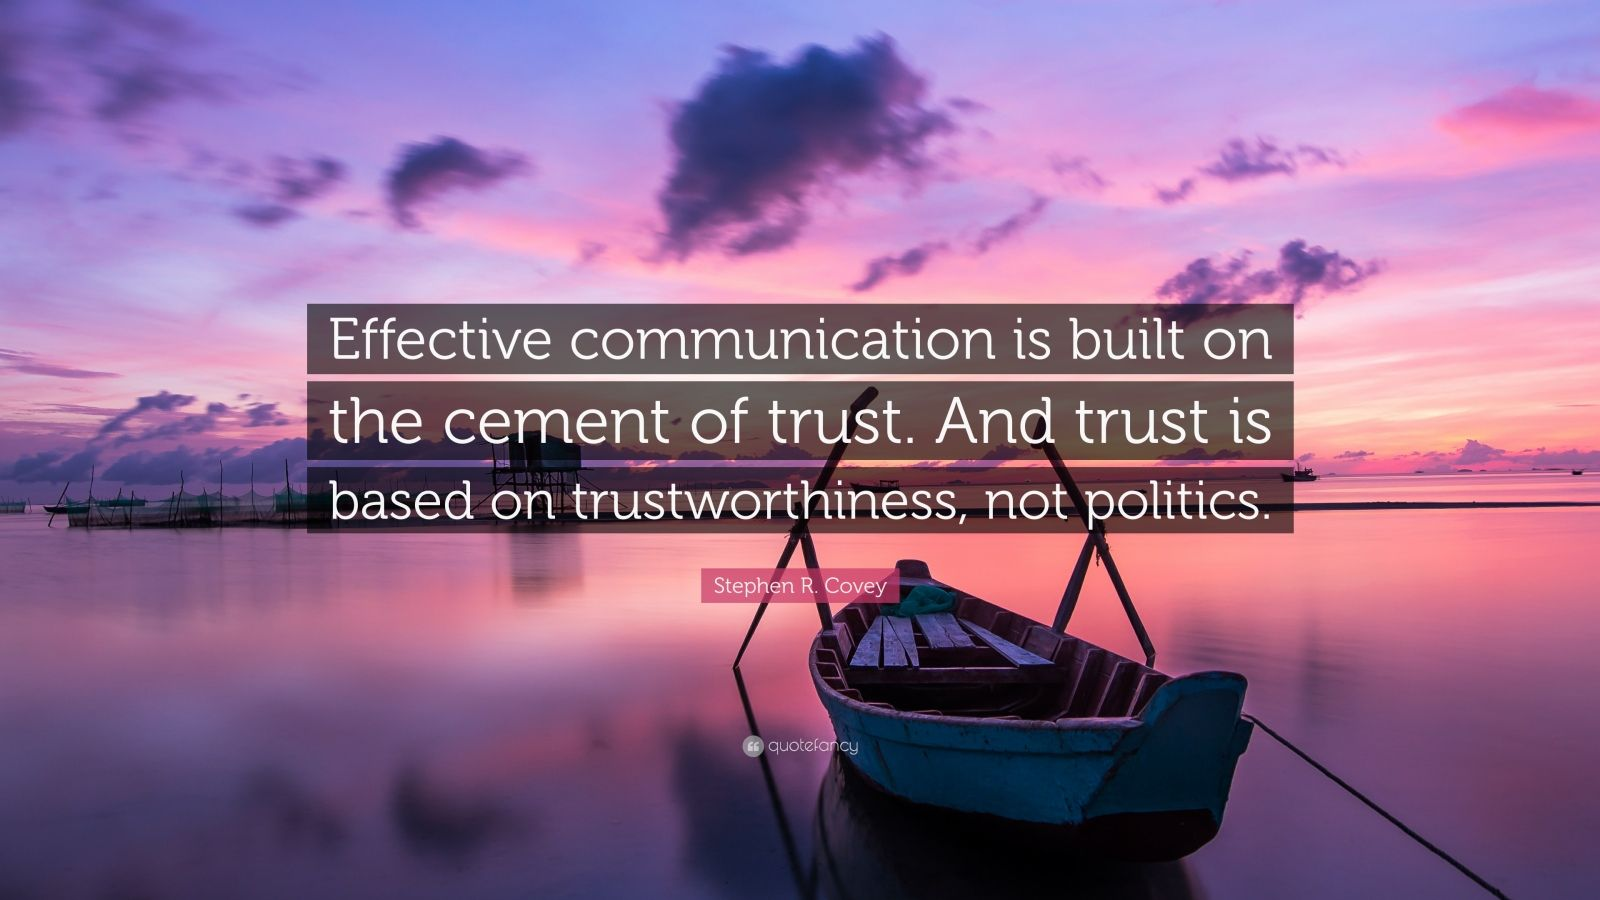 """Stephen R. Covey Quote: """"Effective communication is built on the cement of trust. And trust is based on trustworthiness, not politics."""""""